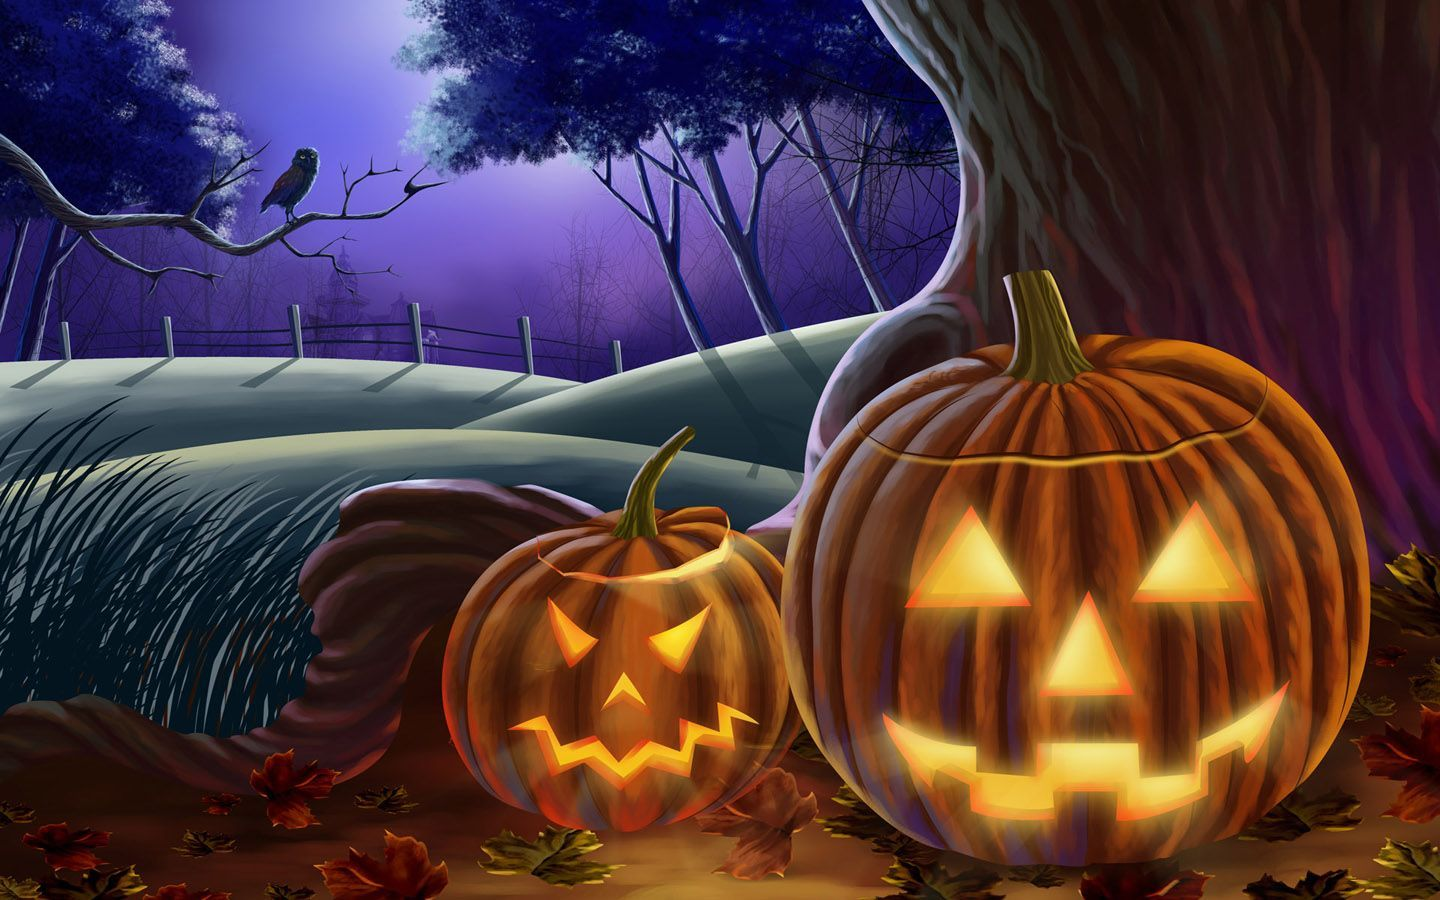 Halloween Pumpkin Wallpaper Hd.29 Halloween Pumpkin Wallpapers Halloween Pumpkin